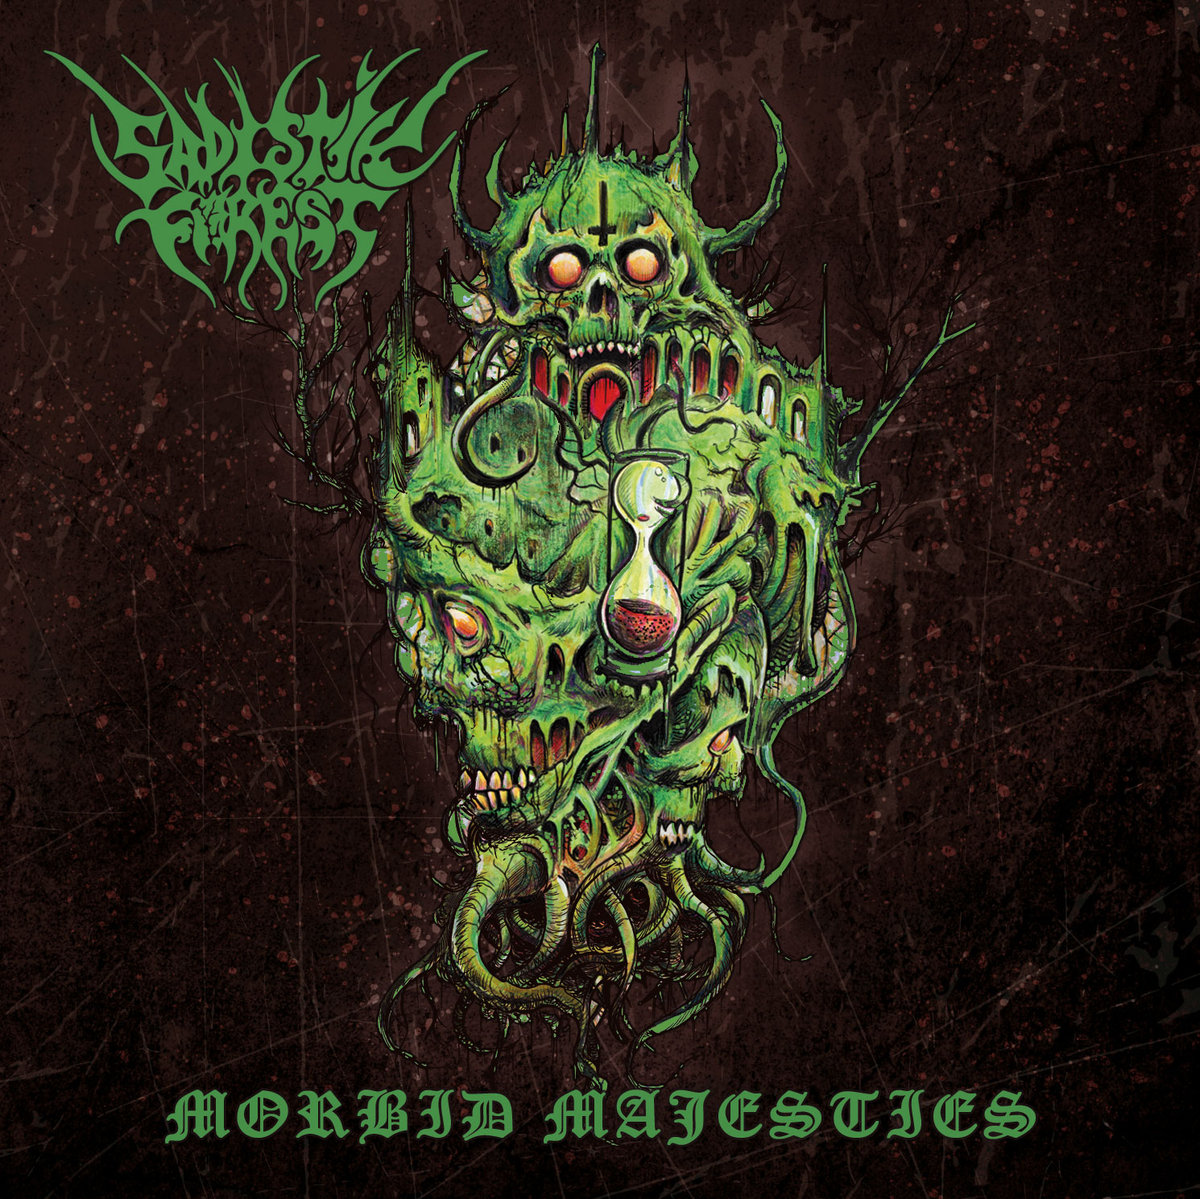 """Morbid Majesties by Sadistik Forest -  Can I just start this off by saying that the sheer amount of quality extreme metal music being produced this year is ab-so-loot-ley in-facking-sane. Thanks to the undying dedication and passionate independent record labels much like Transcending Obscurity, (who put out this record) among countless others; and the magnanimous amount of bands much like Sadistik Forest for churning out such epic, crushing, inspired, and genuinely GOOD music. It has actually gotten to the point of being overwhelming. I mean, I don't review half of the records I get and plan on reviewing, as more and more keeping coming like (literal) bats out of hell. What a great fucking problem to have, though. If you want to go as far as to call the market oversaturated or not, the reality is in the current state of the game a band has to put out a really strong release or have a really cool gimmick or wit about them to be noticed and praised among the others, and there has been more than a few releases this year that have done just that. This resurgence of extreme metal and dedication to the inventiveness and quality of it is happening right before our eyes, and we should throw on some dope ass shades and fucking enjoy it, if you ask me. Sadistik Forest's new record is a record I chose to review not because it reinvents the death metal wheel whatsoever… there are no electronic sounds, atmosphere-inducing tones, and they definitely aren't wearing any cheap halloween costumes. Hailing from Finland and have no intentions of fucking around, they present to you Morbid Majesties. This record is a refreshing take on no frills, old-school, unapologetic, death metal. And we love it. The thing that first intrigued me most about this record was the art of the band name and the actual album art itself, the imagery it provided.. it was impossible to know what this would be sounding like. It doesn't have a strictly old-school death metal vibe, or a """"core"""" or """"slam"""" element, """